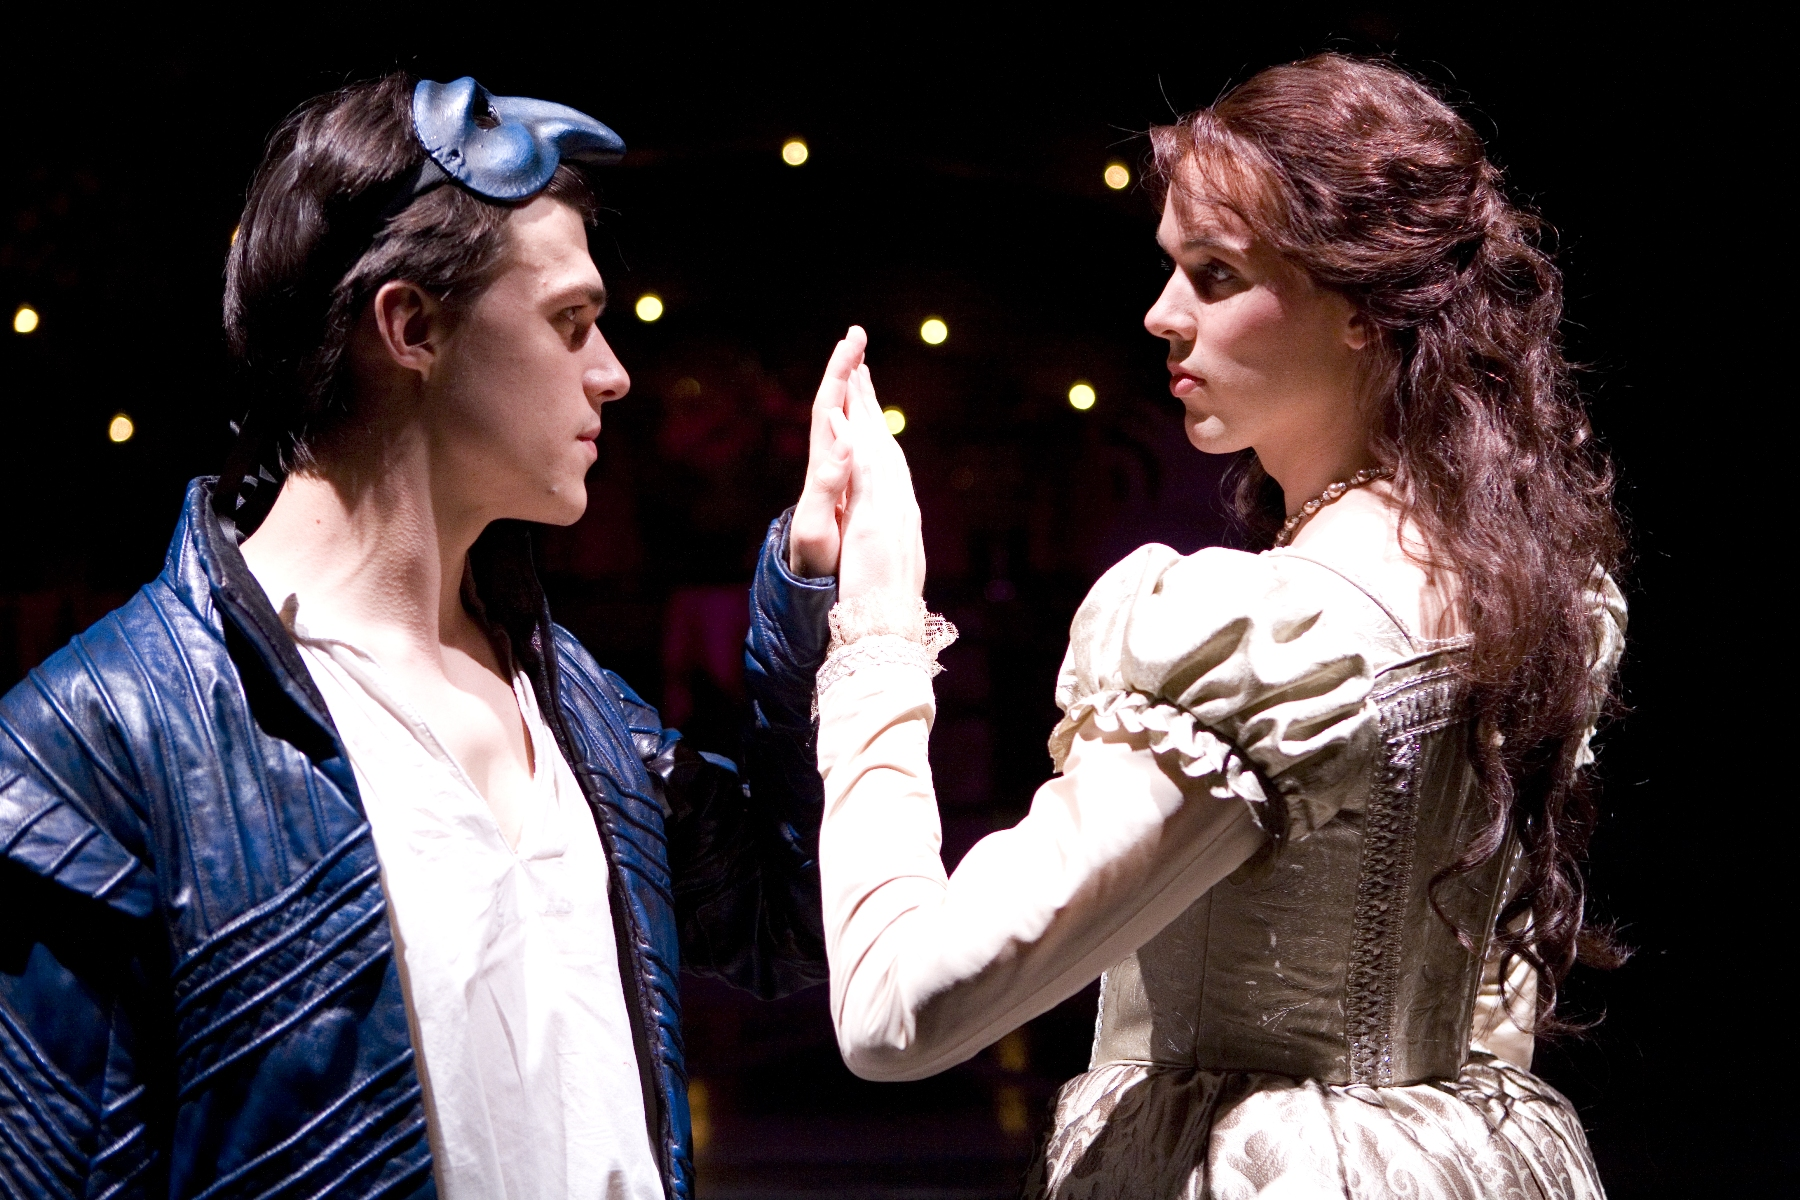 an examination of the character of juliet in the play romeo and juliet Character essay on romeo this essay will discuss the character romeo in the play romeo and juliet by william shakespeare romeo.